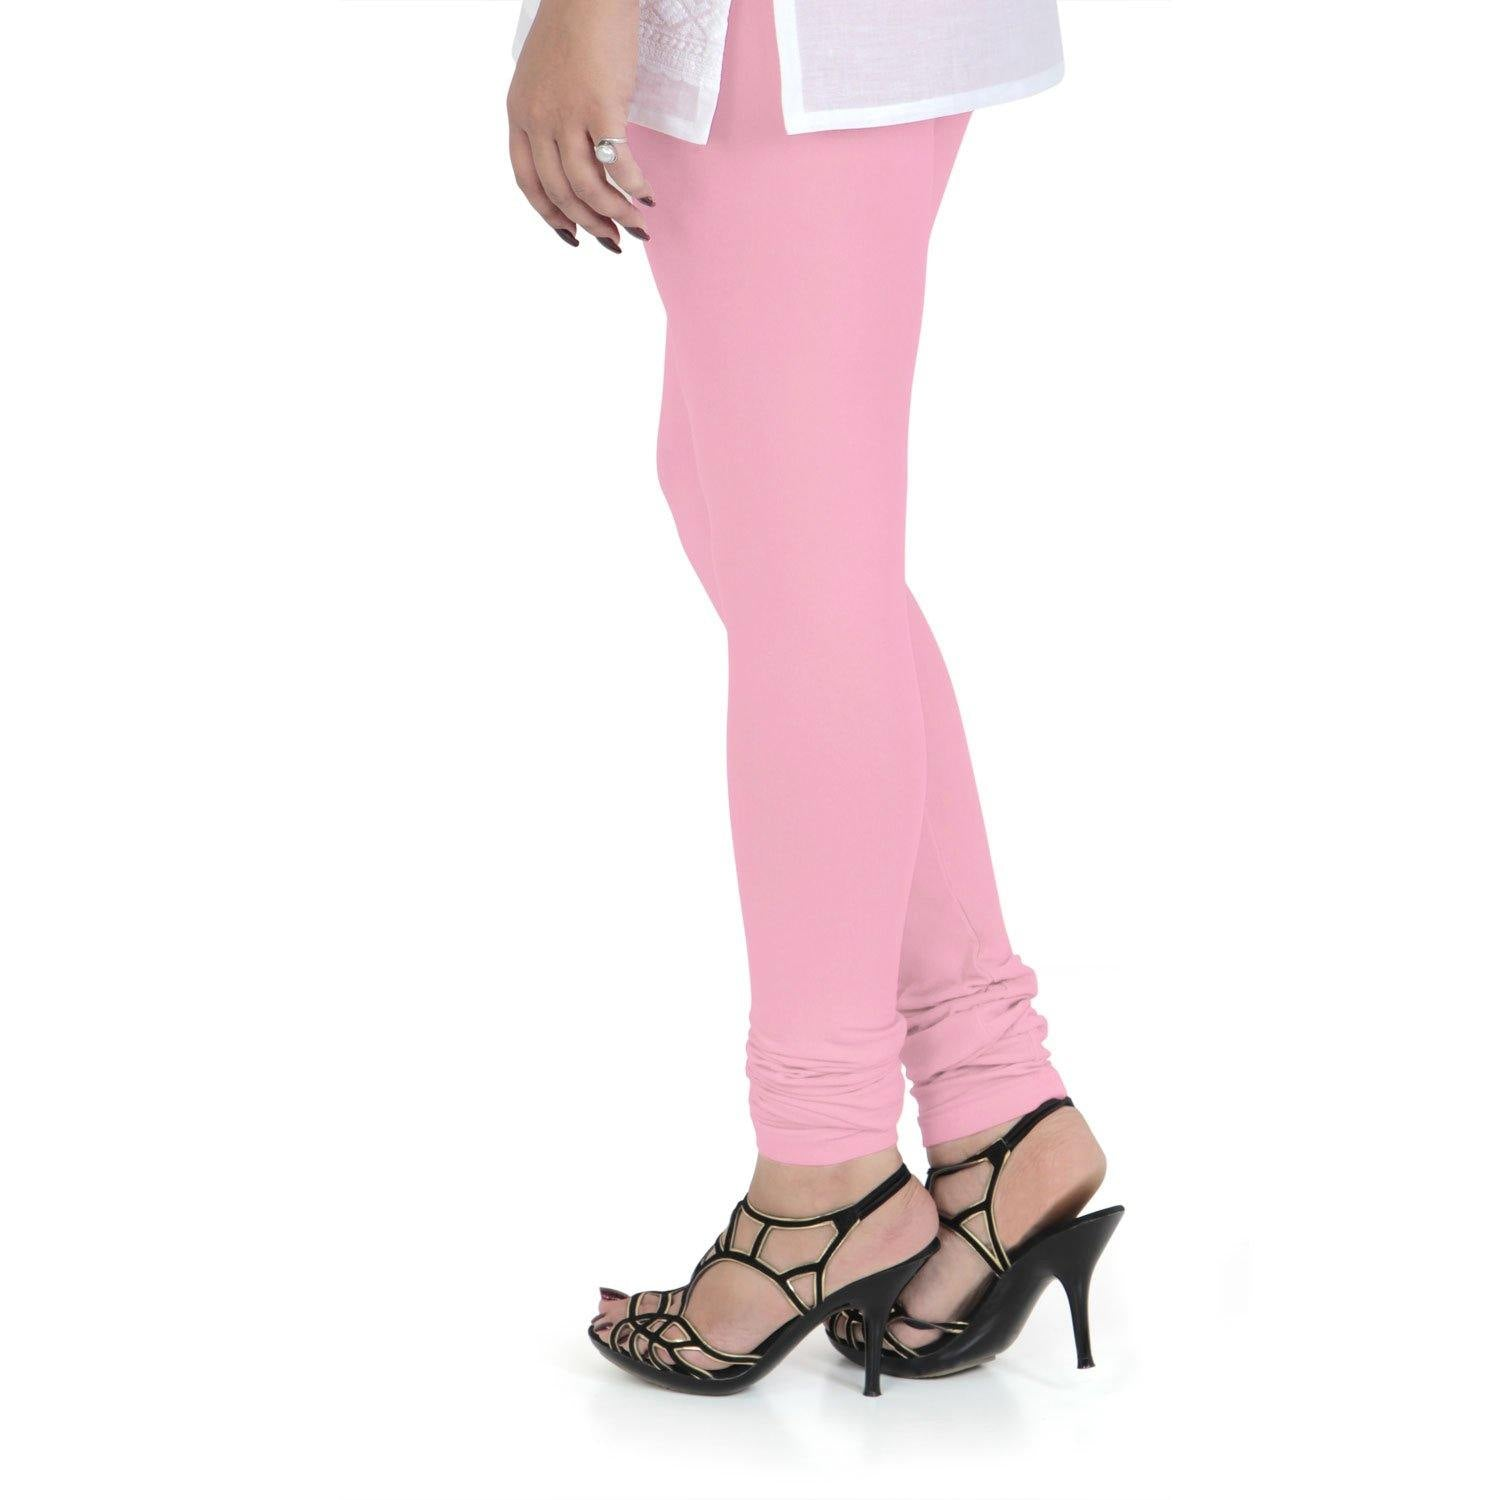 Vami Women's Cotton Stretchable Churidar Legging - Royal Pink - Bonjour Group